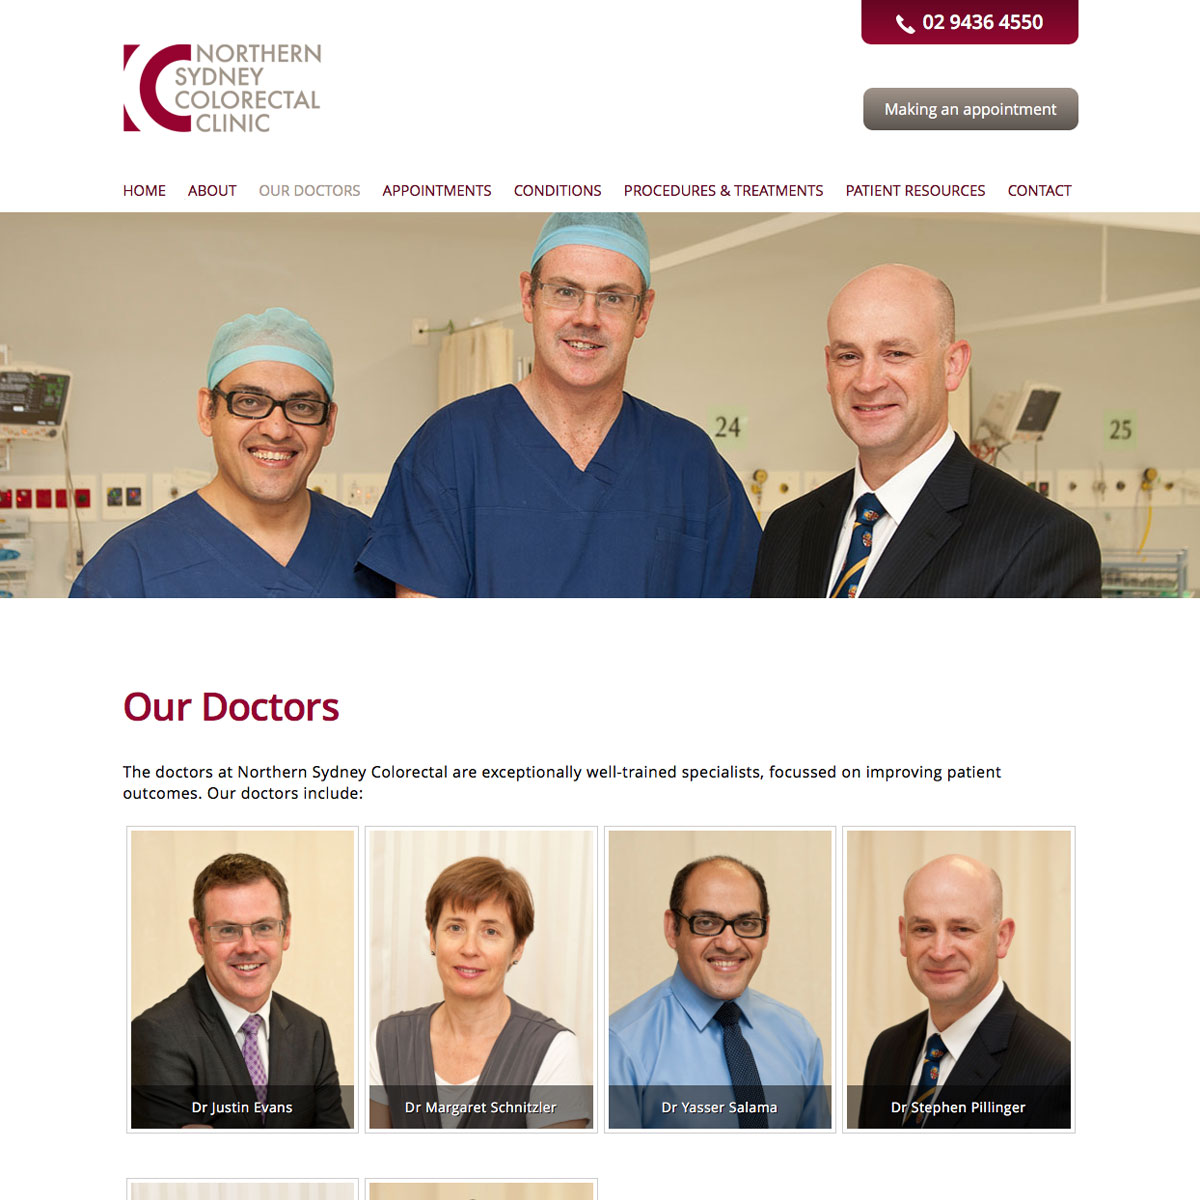 Northern Sydney Colorectal Clinic Our Doctors